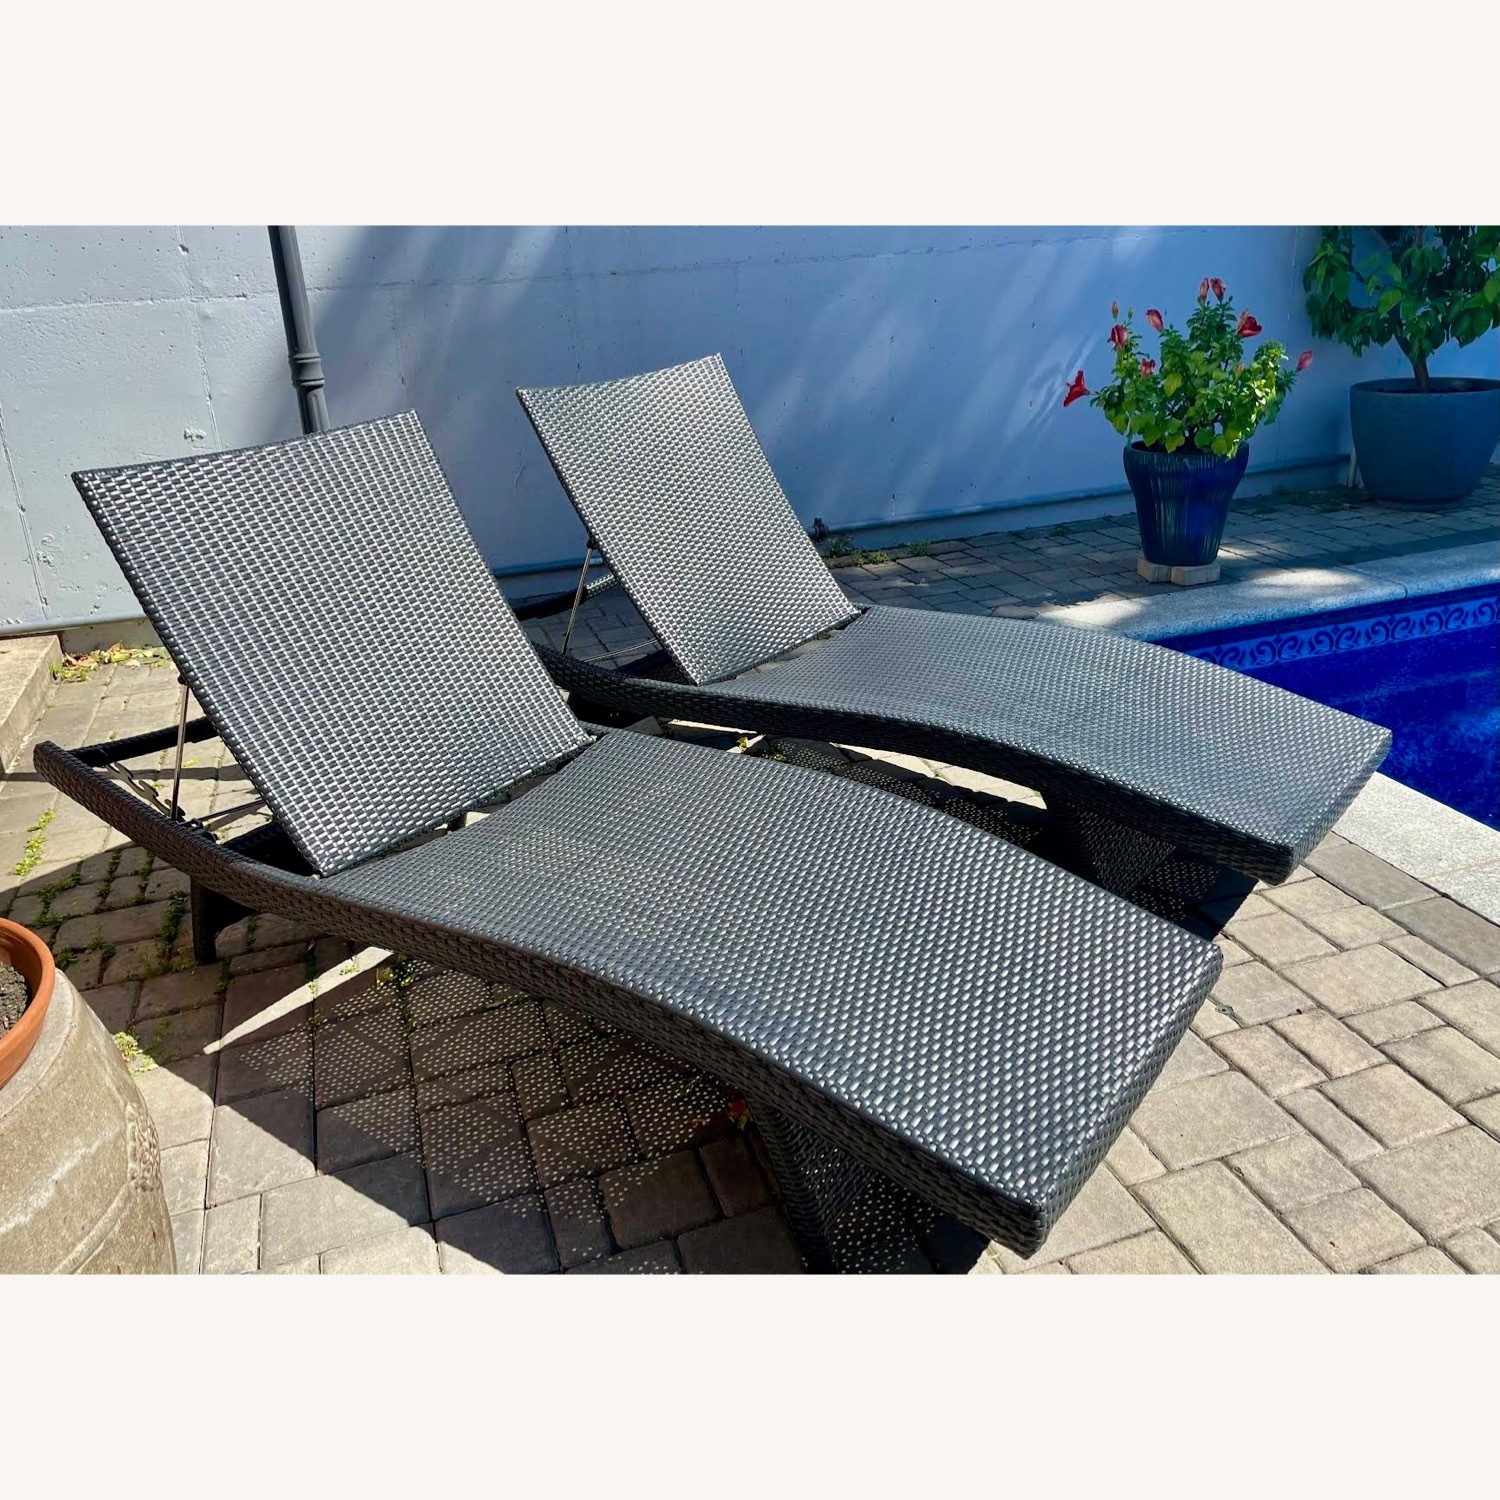 Original Balencia Black Chaise Lounges, Set of Two - image-1